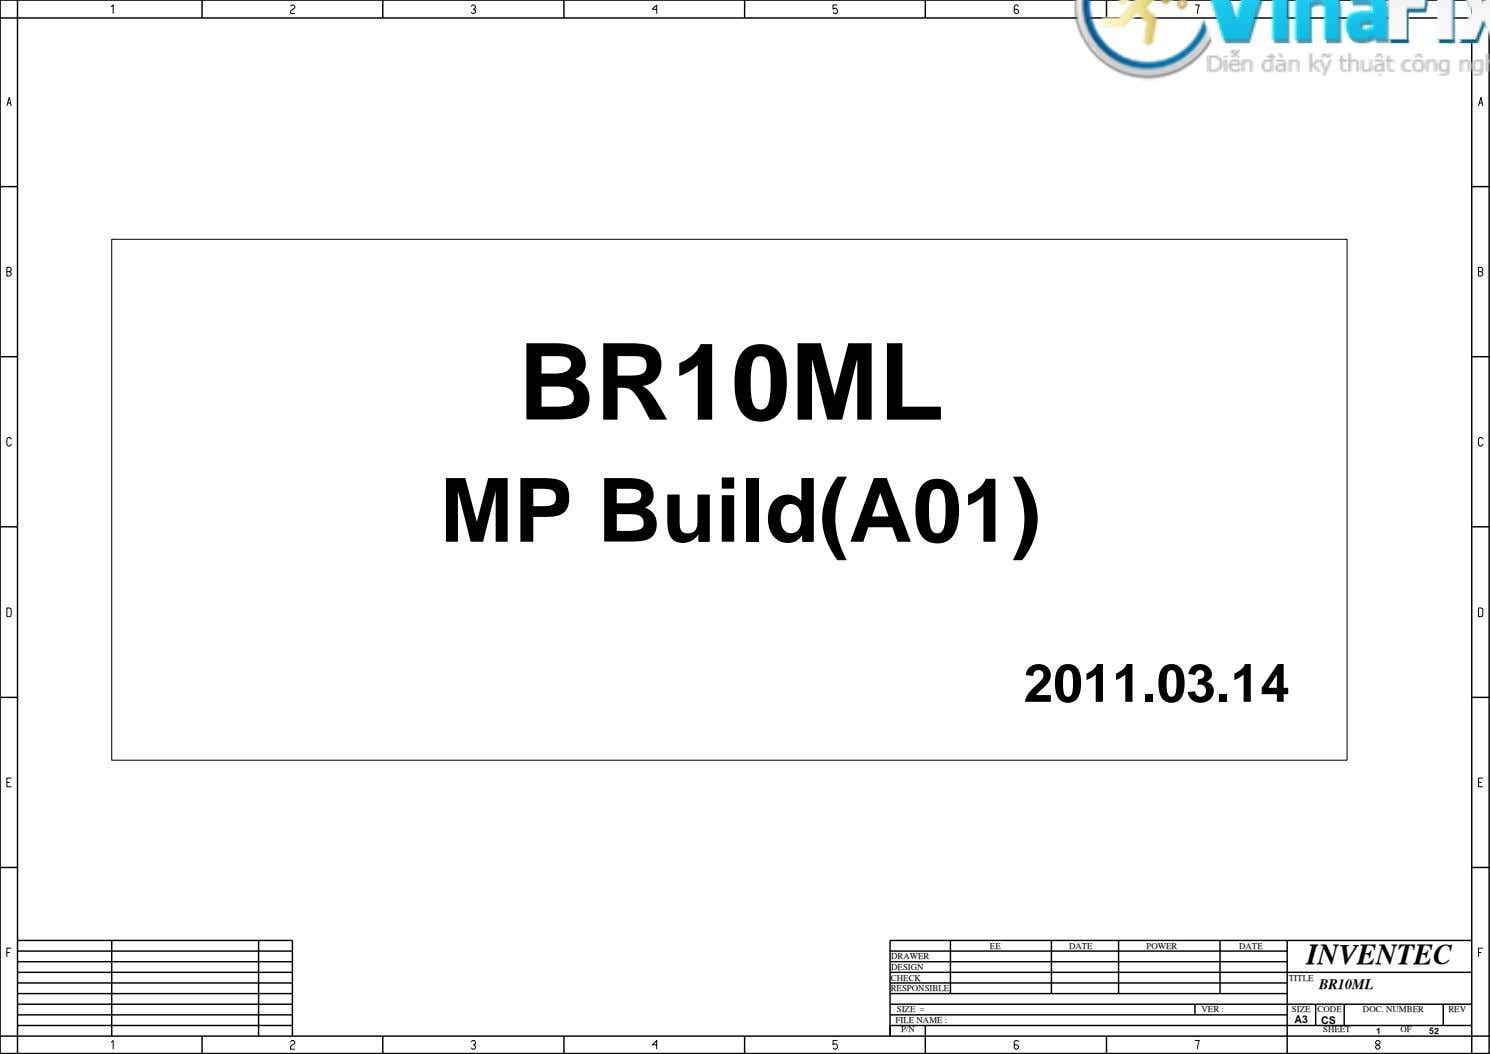 BR10ML MP Build(A01) 2011.03.14 EE DATE POWER DATE INVENTEC DRAWER DESIGN CHECK TITLE BR10ML RESPONSIBLE